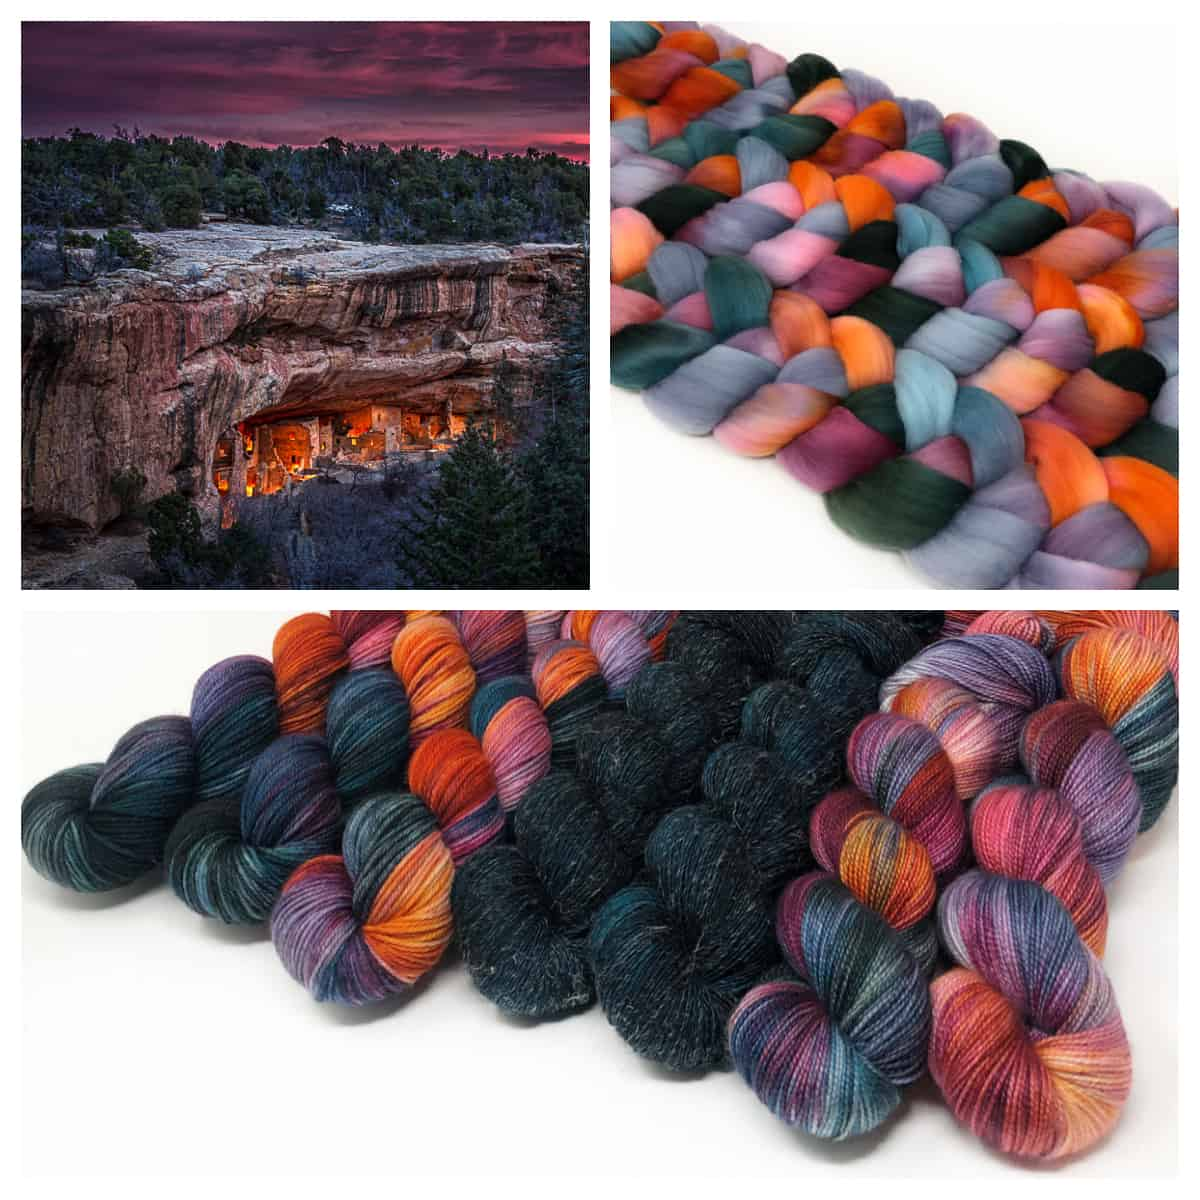 Lit caves under a purple sky and purple, orange and green yarn.